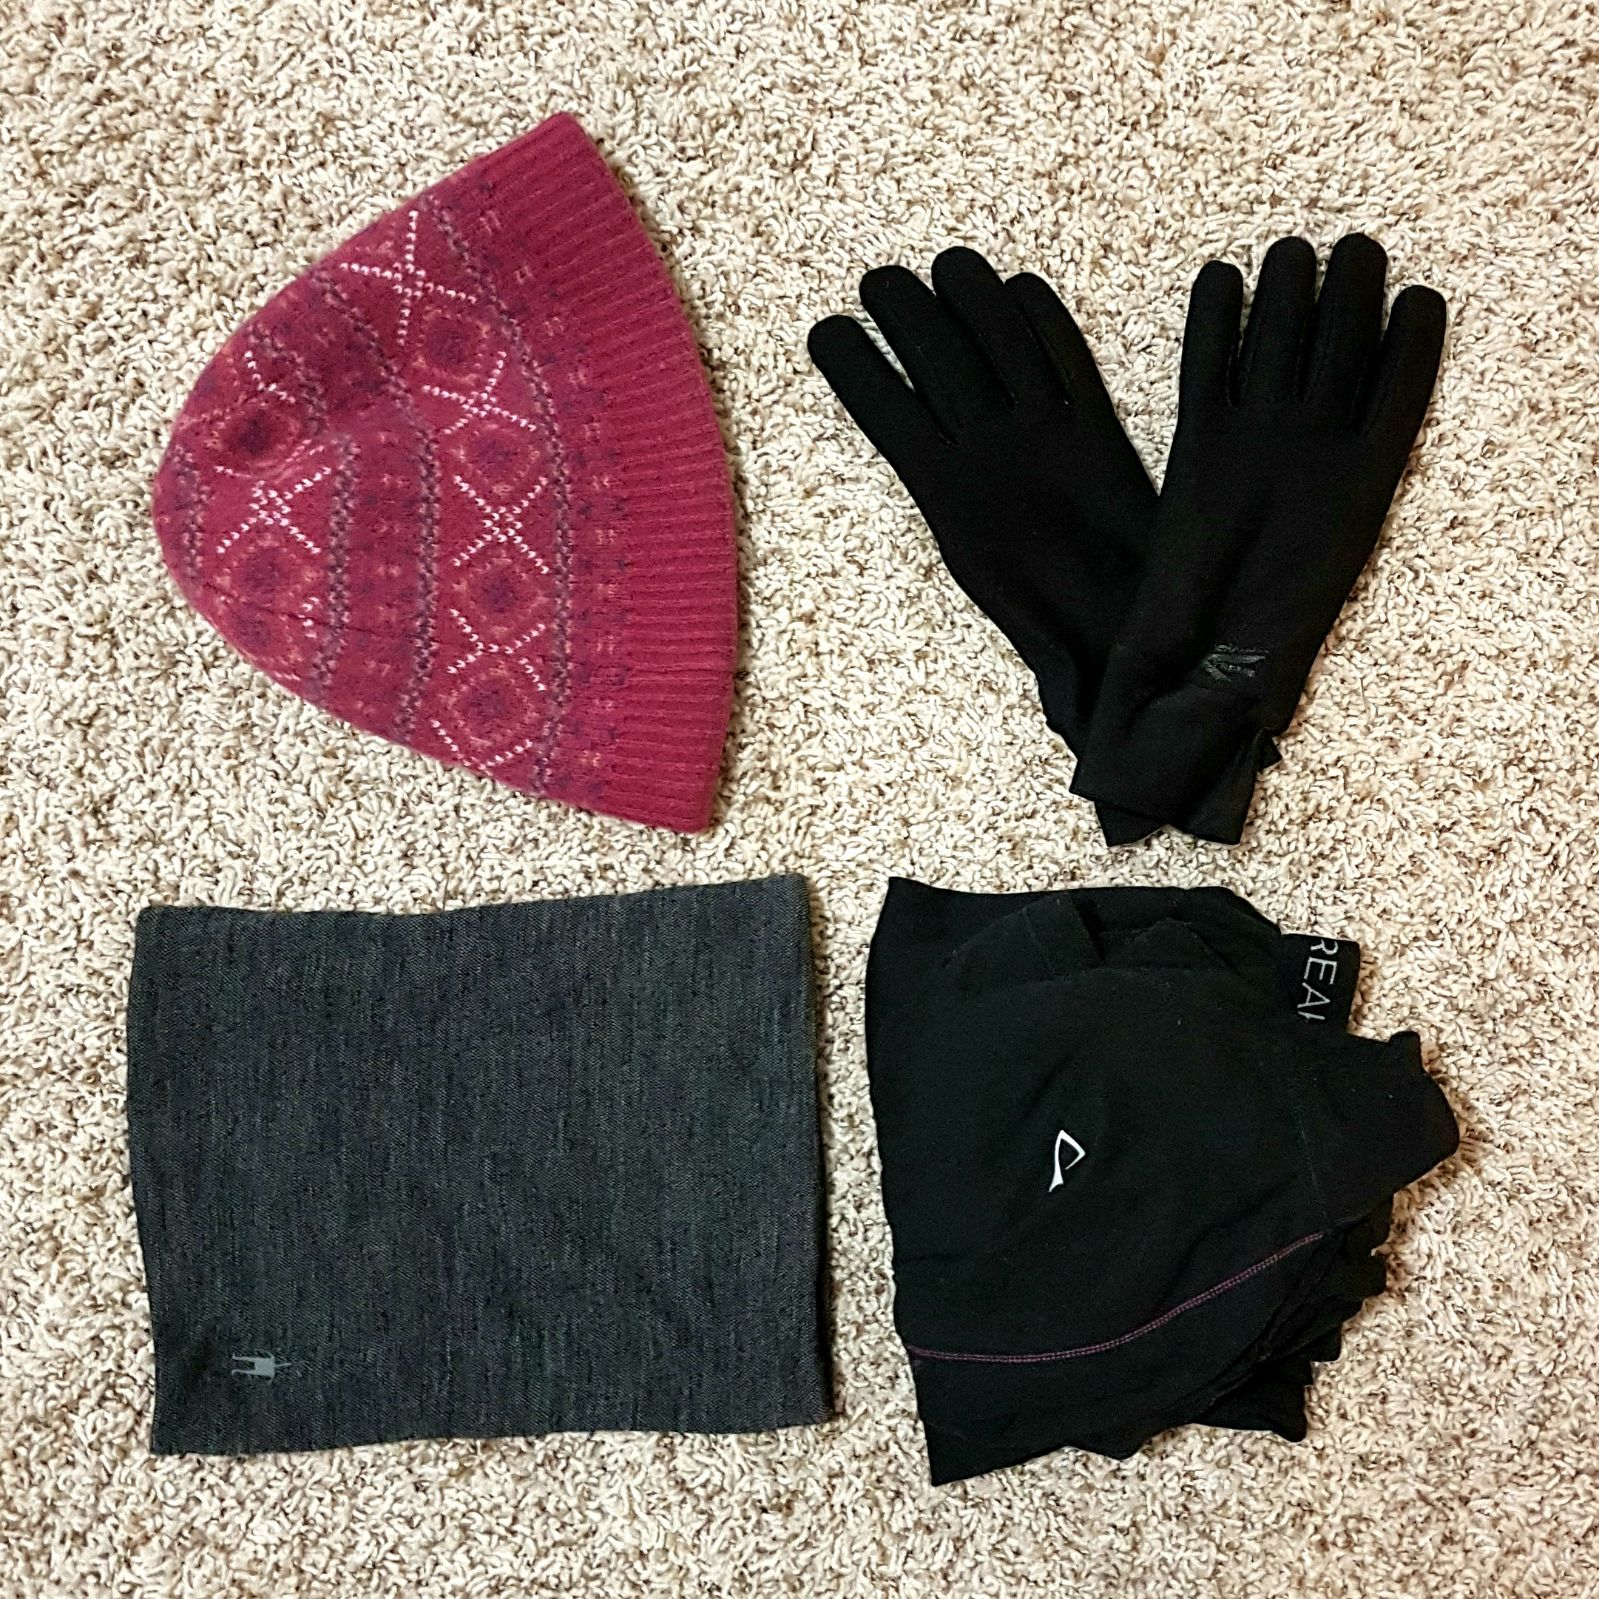 Packing ultralight? You don't need a bag full of sweaters to stay warm!